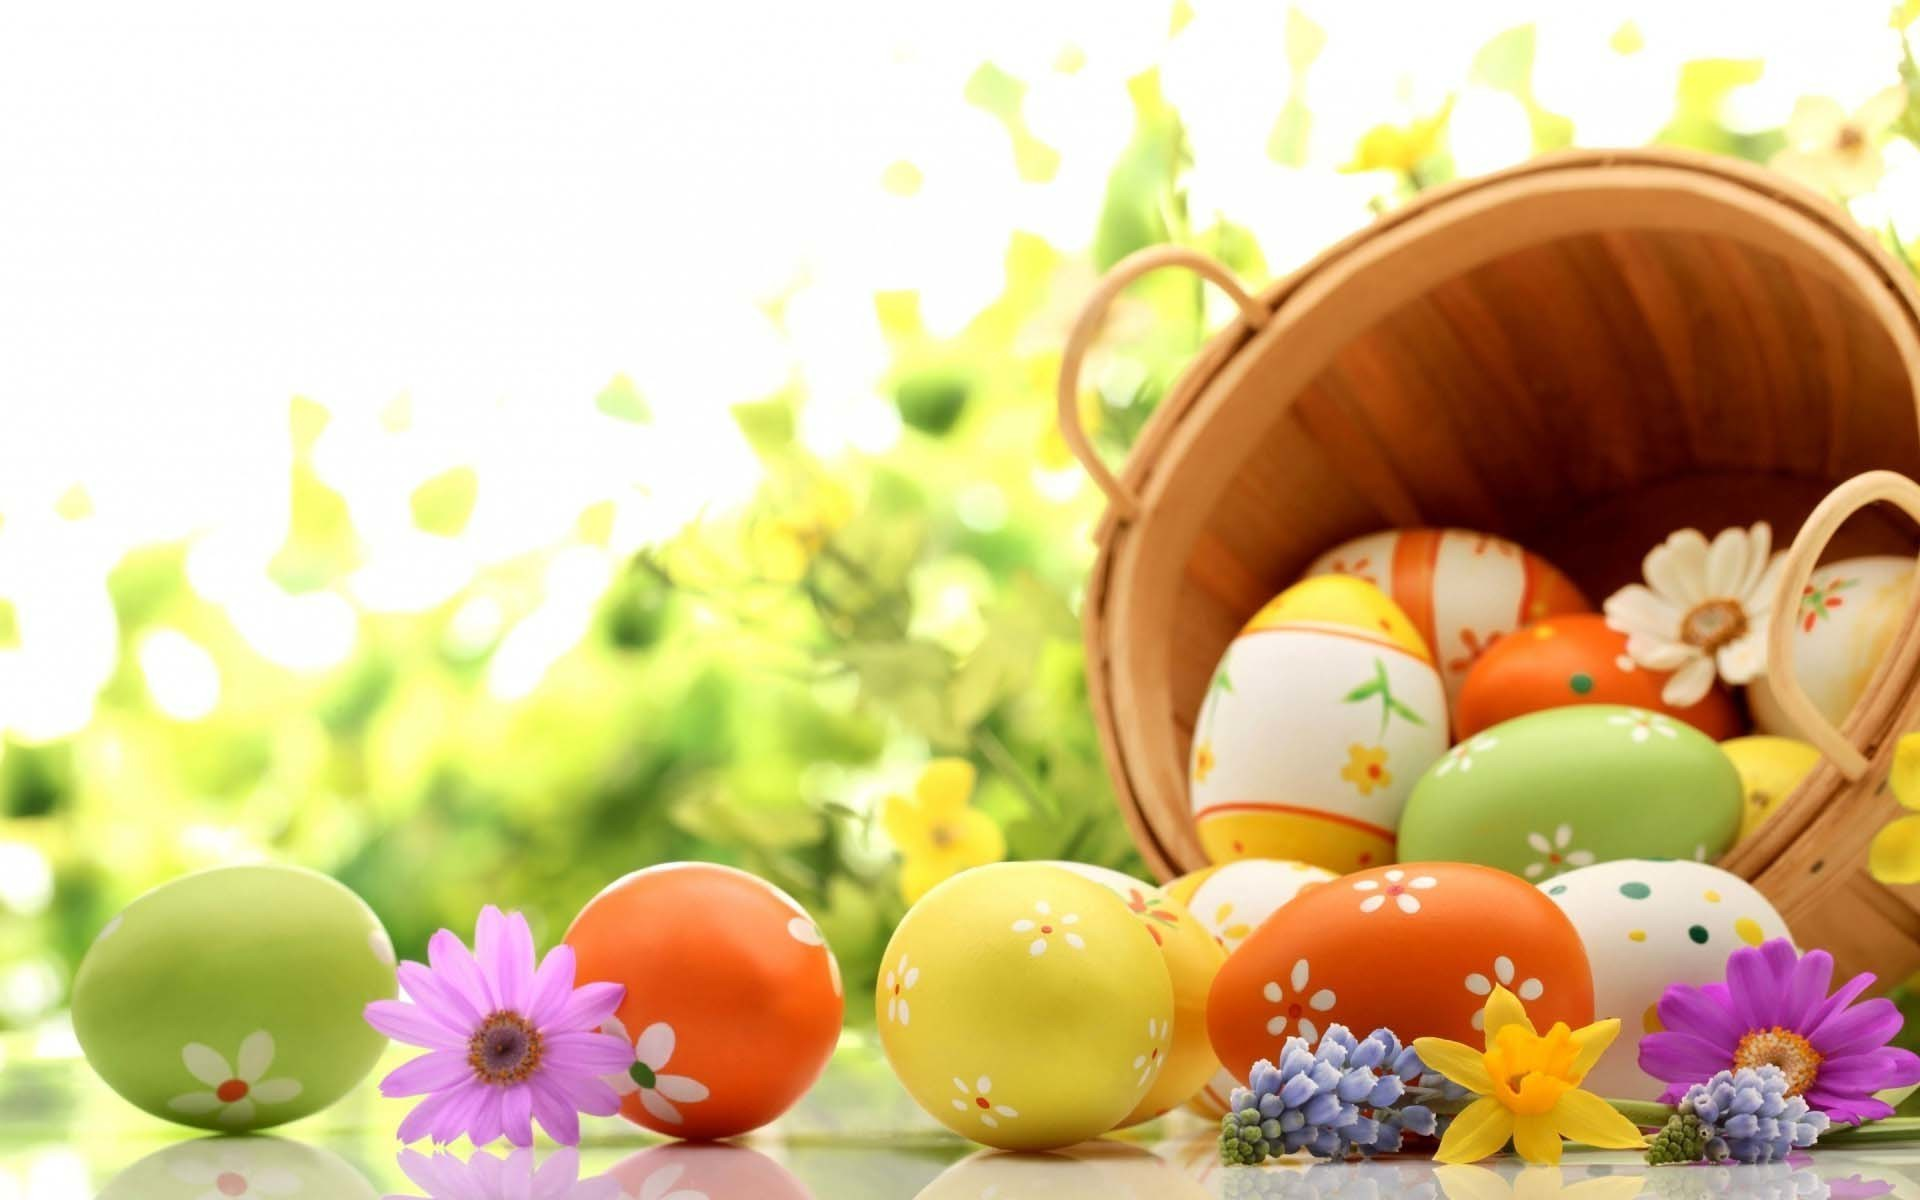 Easter Pictures Wallpaper Background Wallpapertag